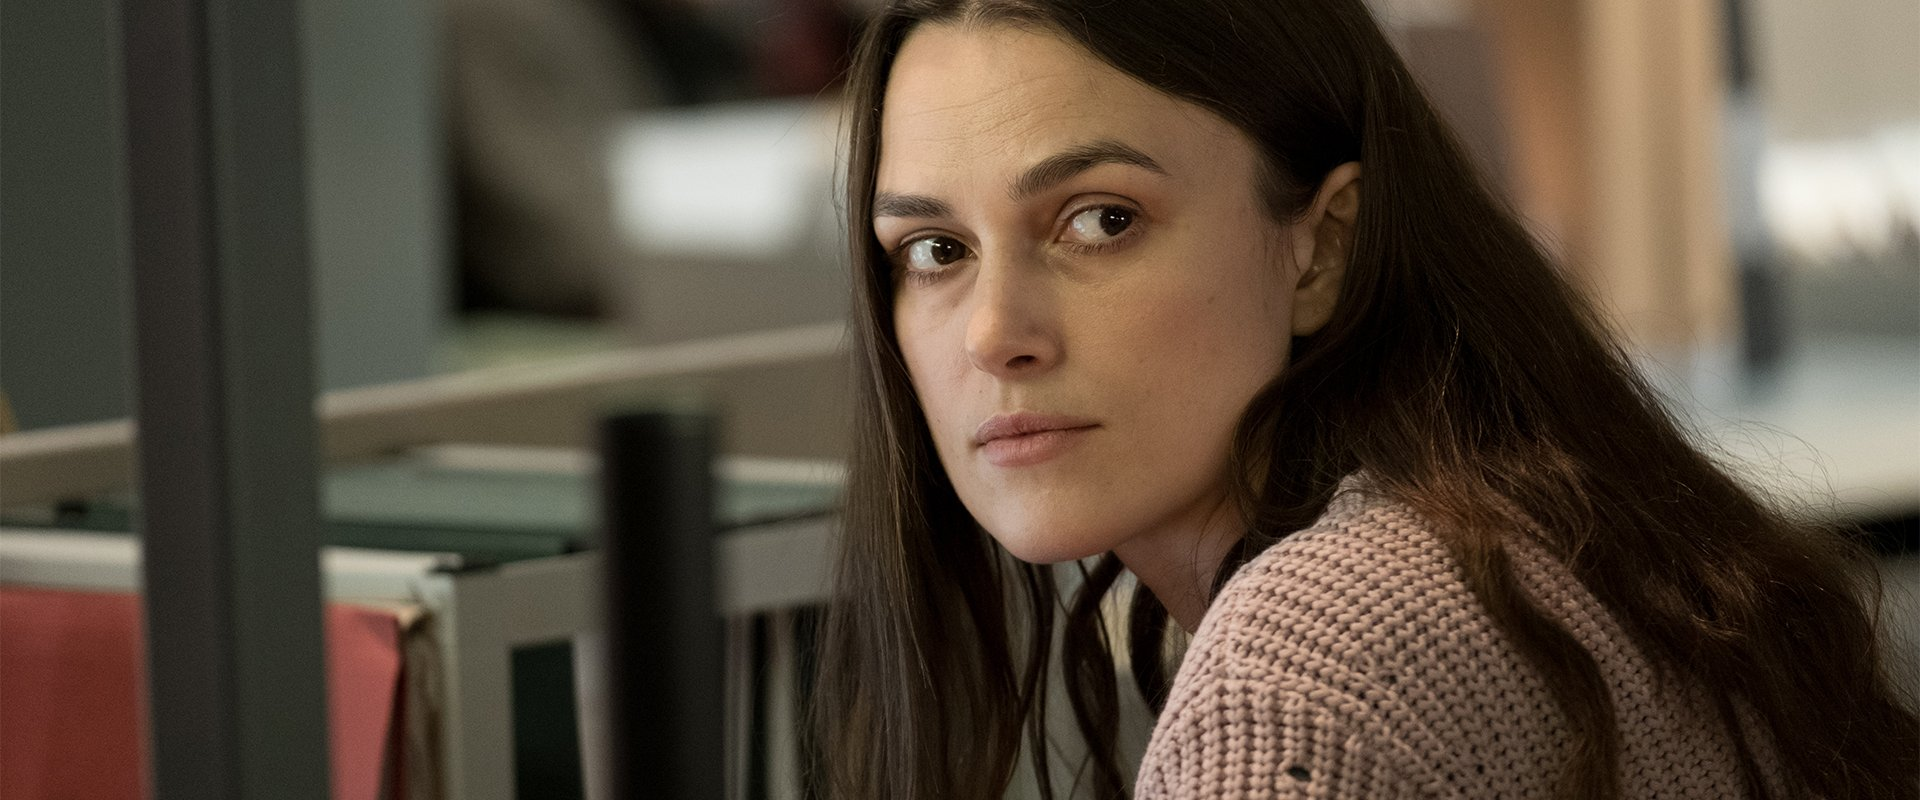 A stressed Keira Knightley looks pointedly off-screen